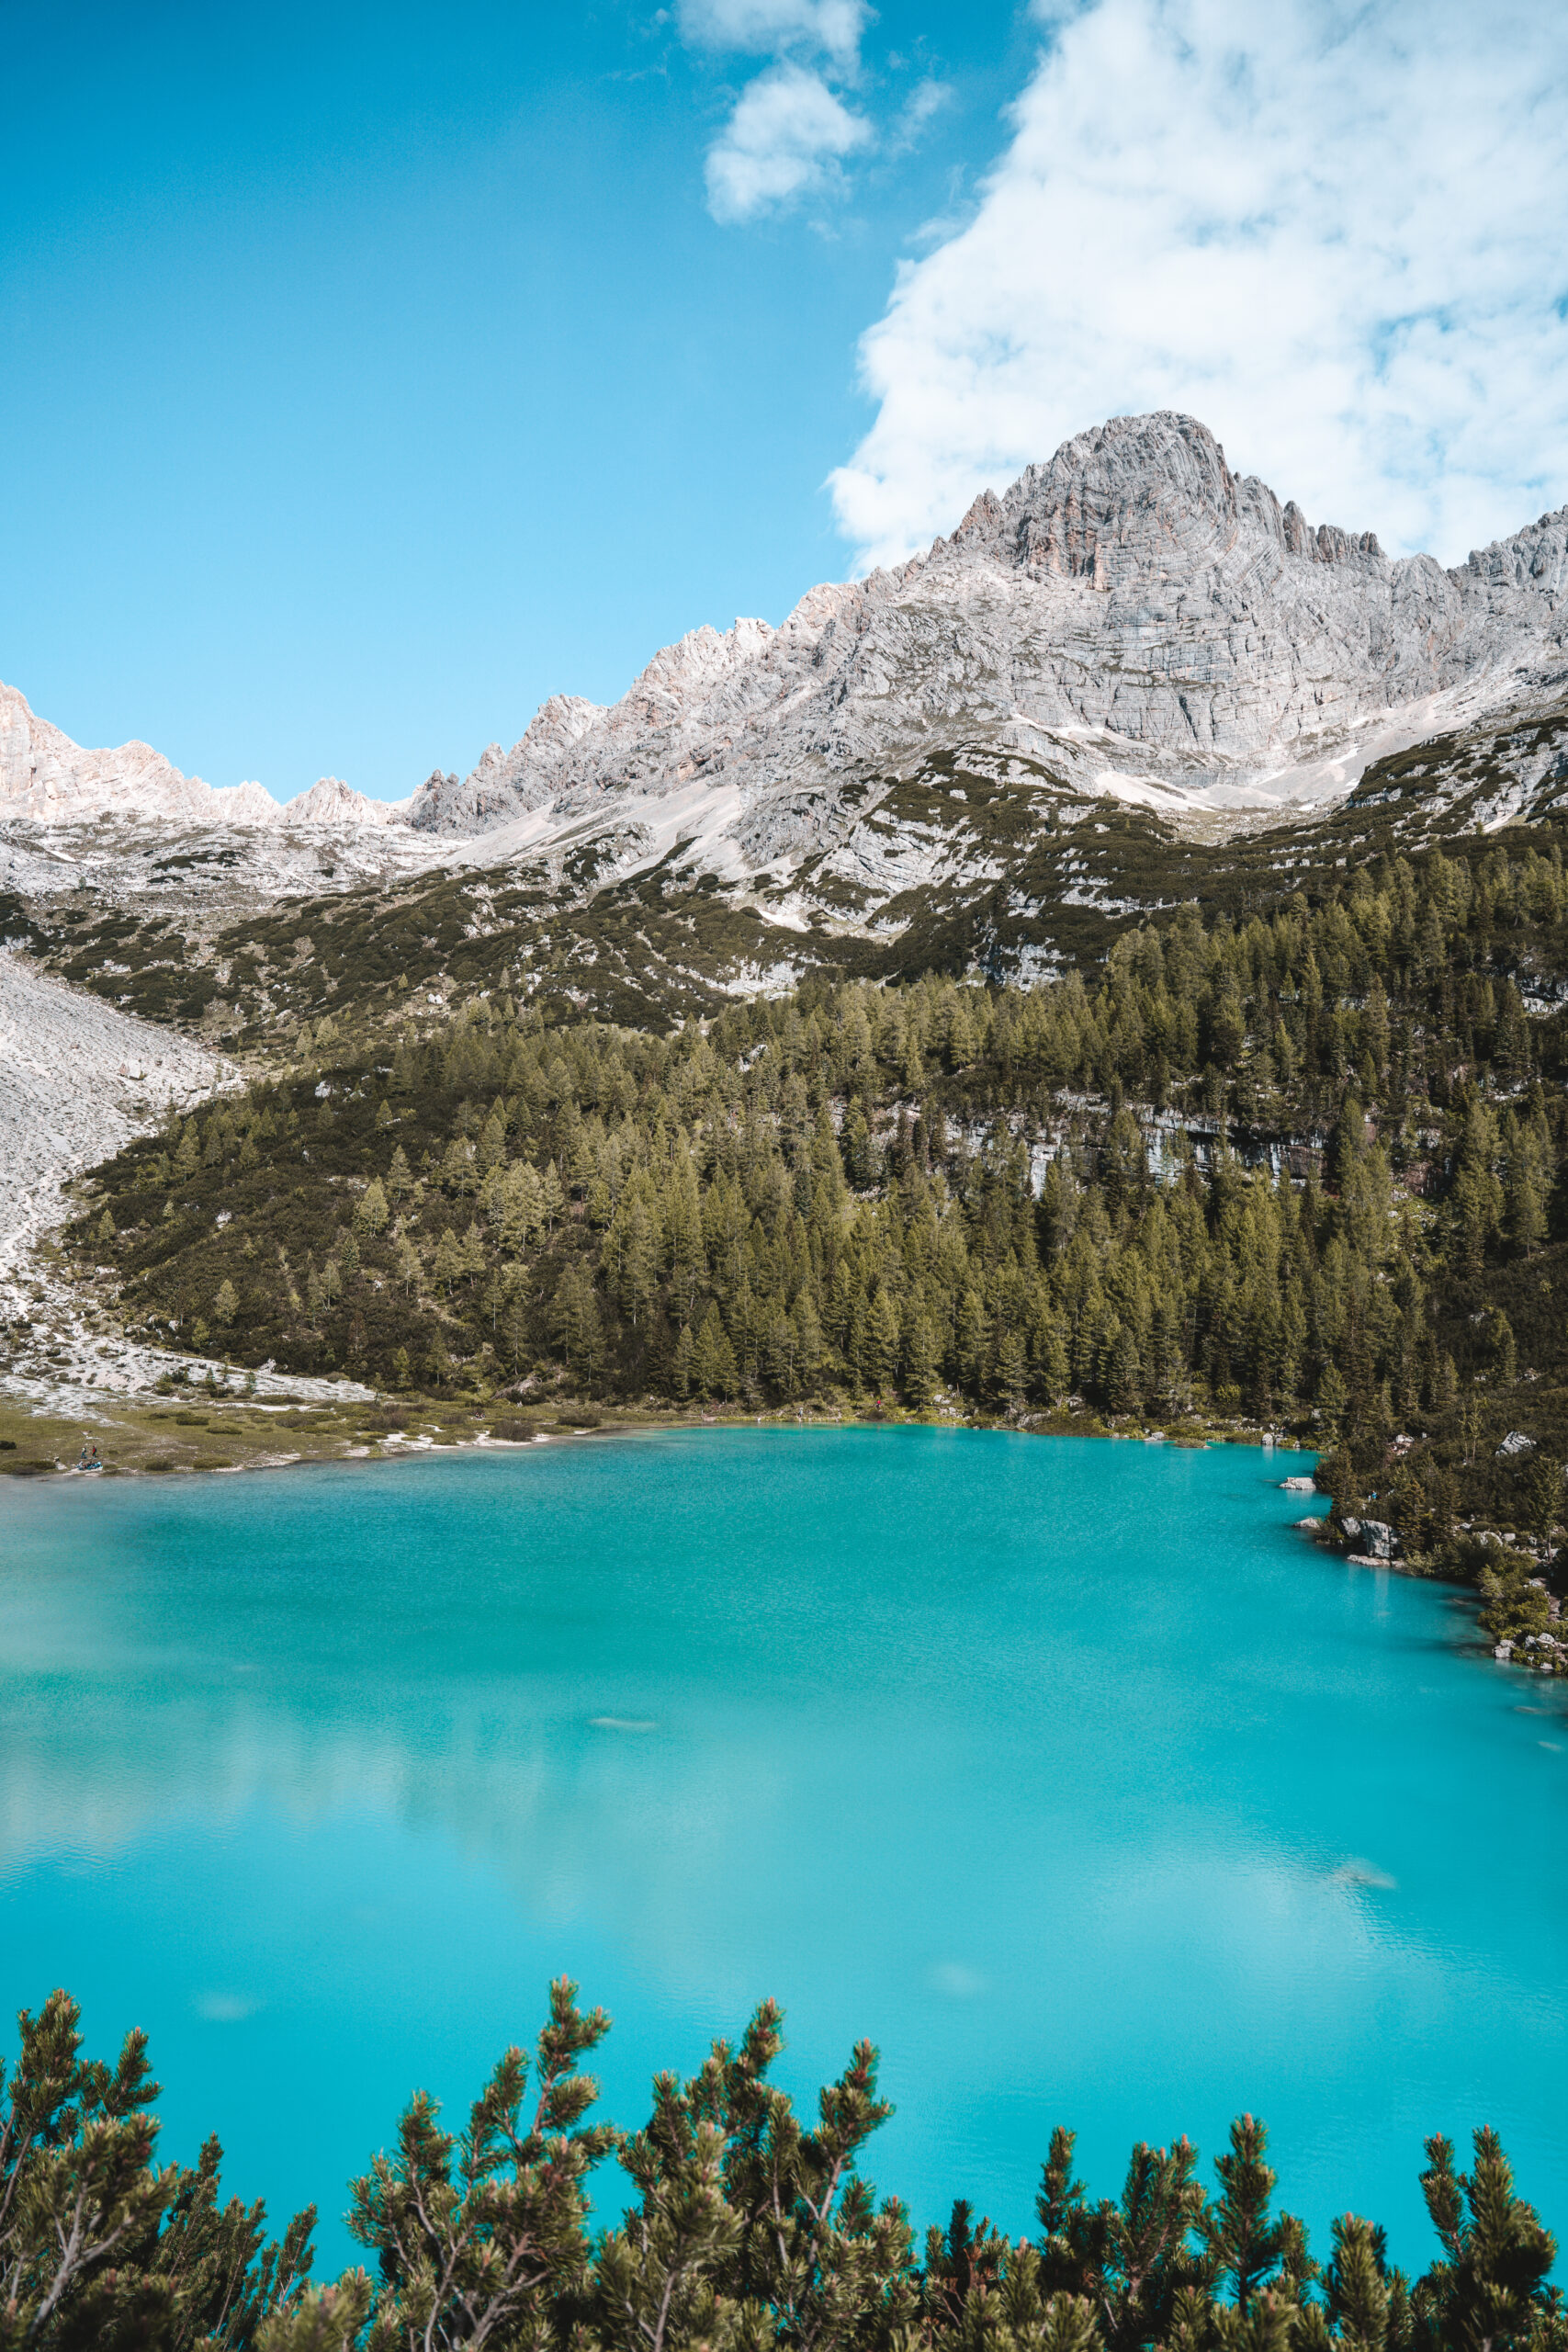 Hike to Lago di Sorapis - everything you need to know